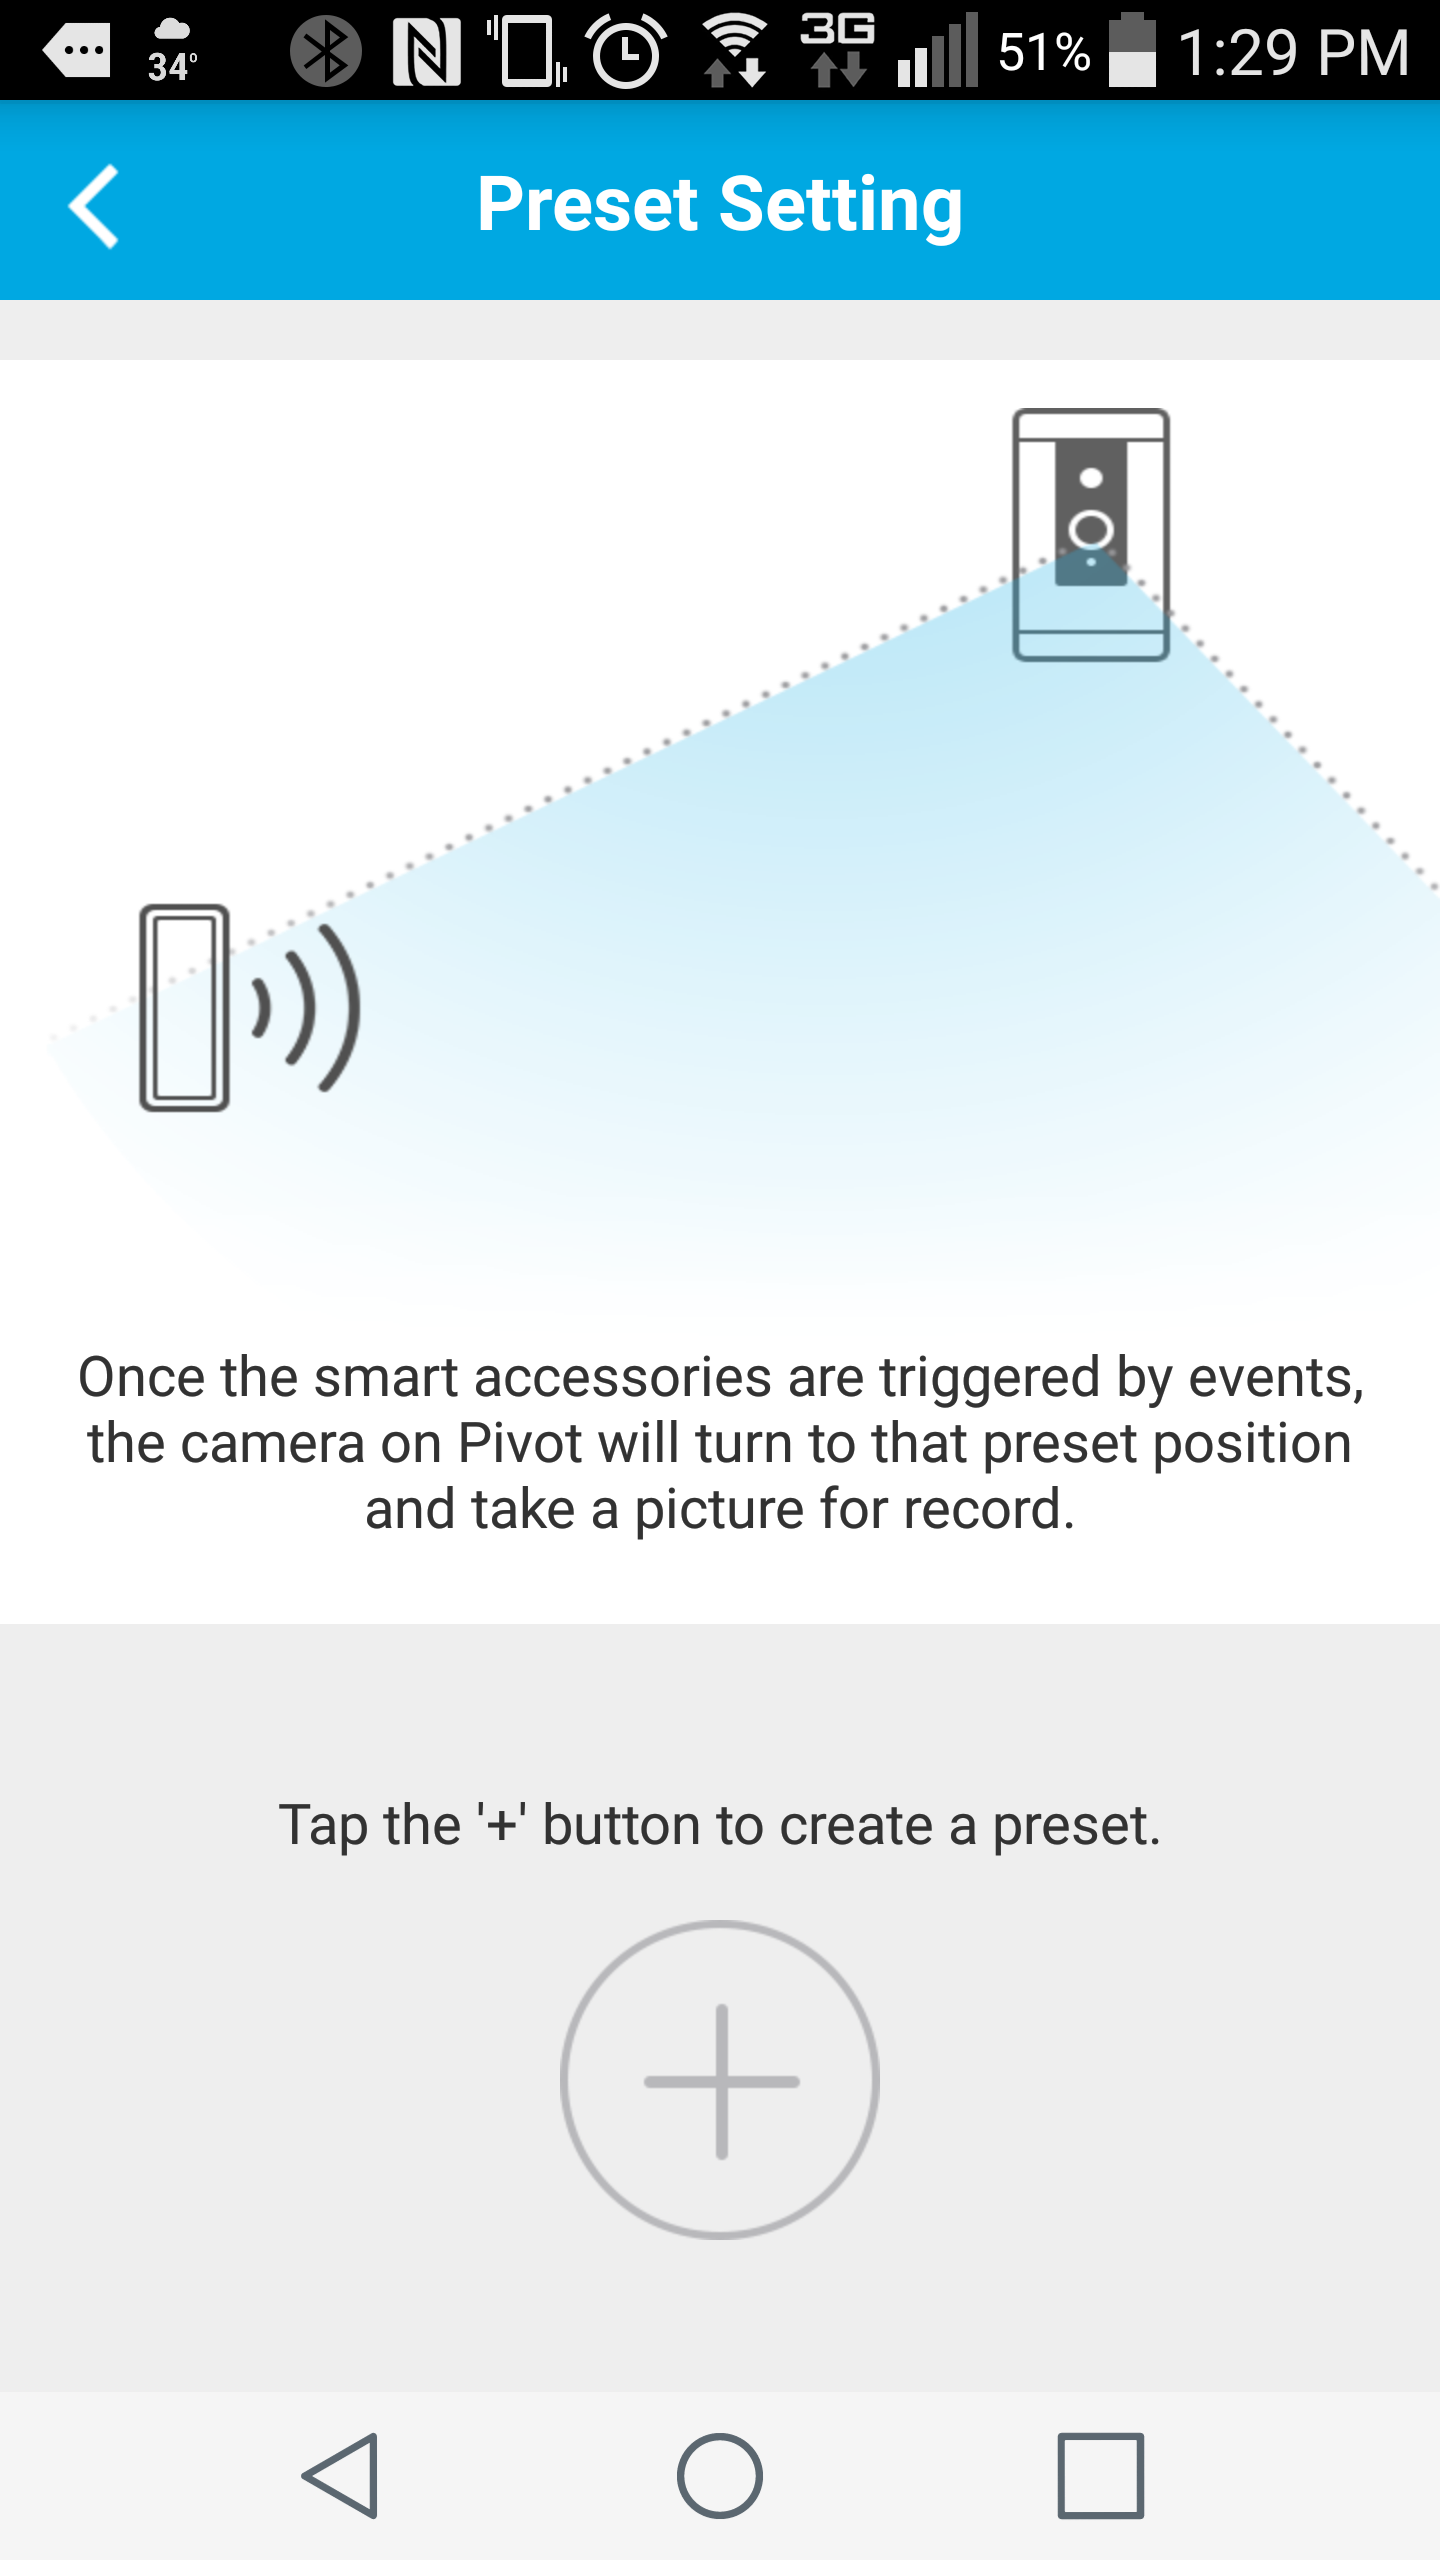 Zmodo Knowledge Base - Accessory preset setup for the Pivot